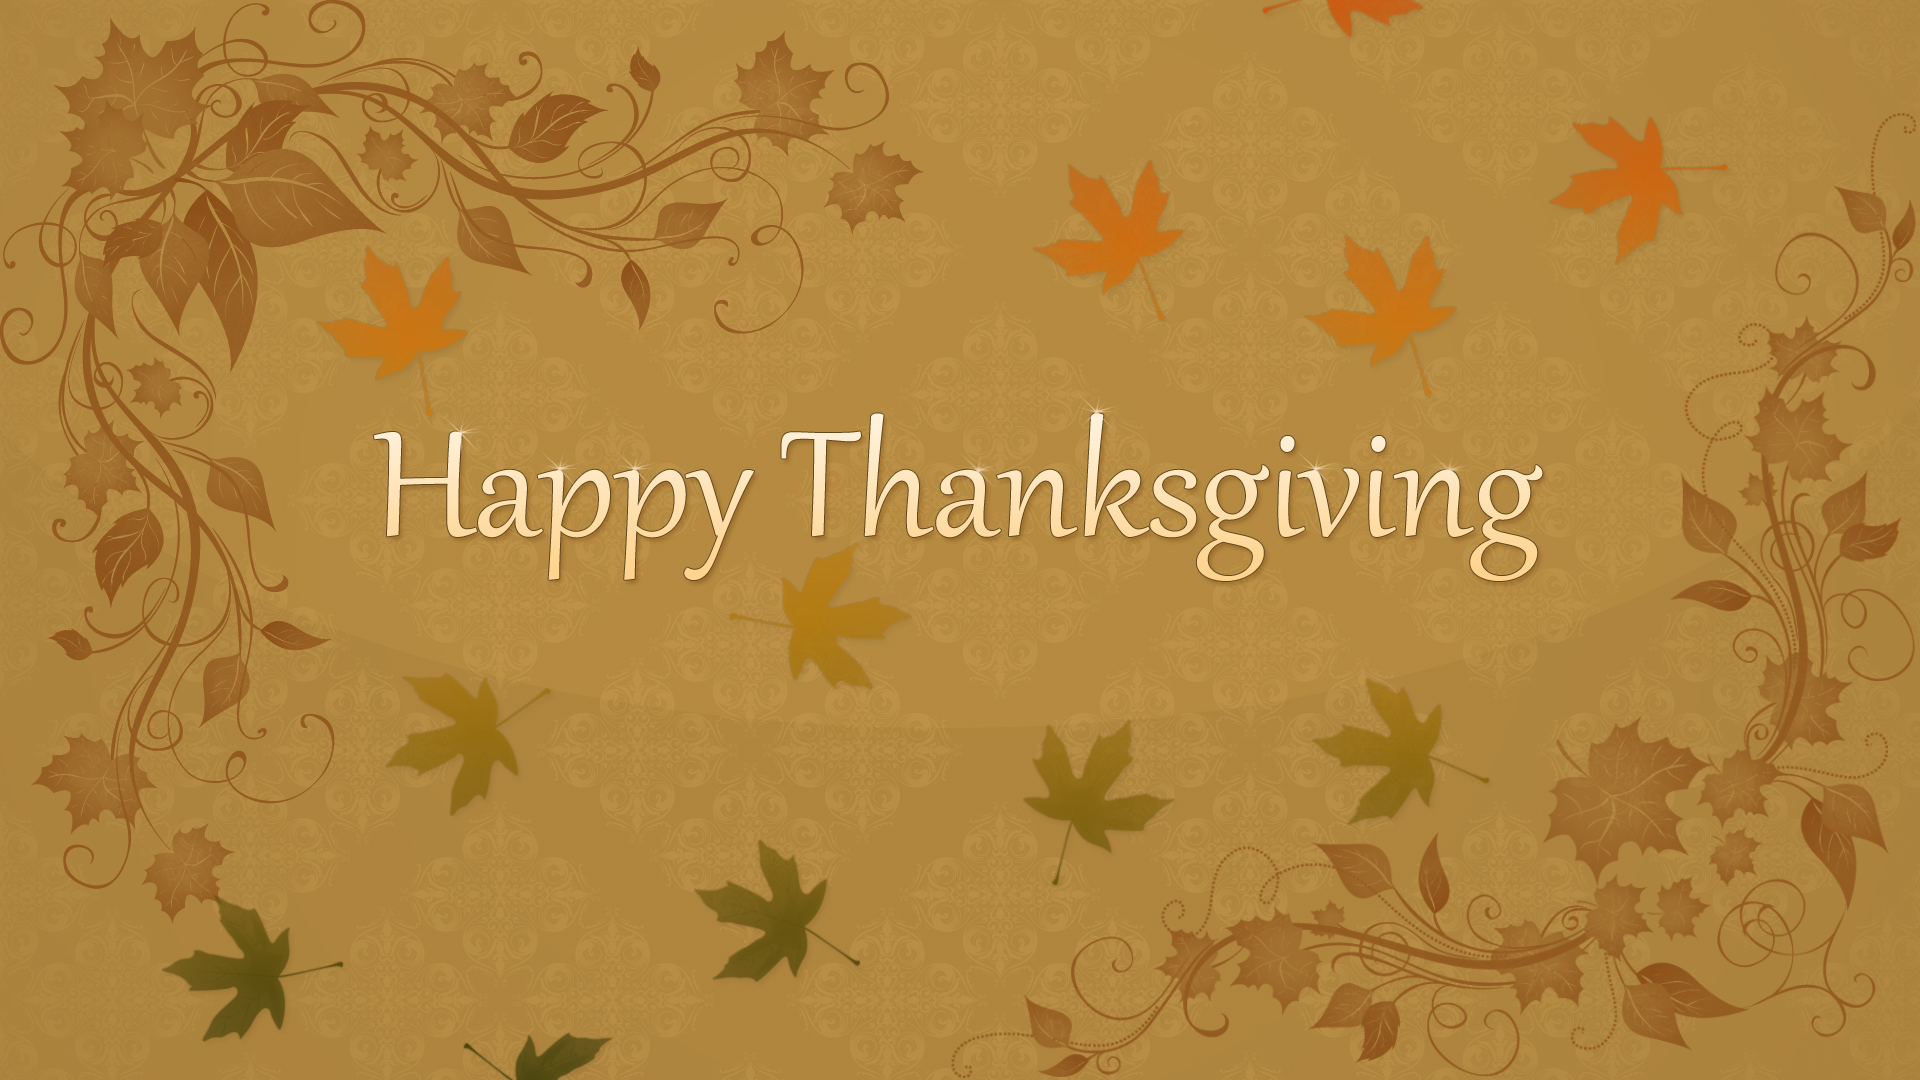 Happy thanksgiving desktop wallpaper   SF Wallpaper 1920x1080